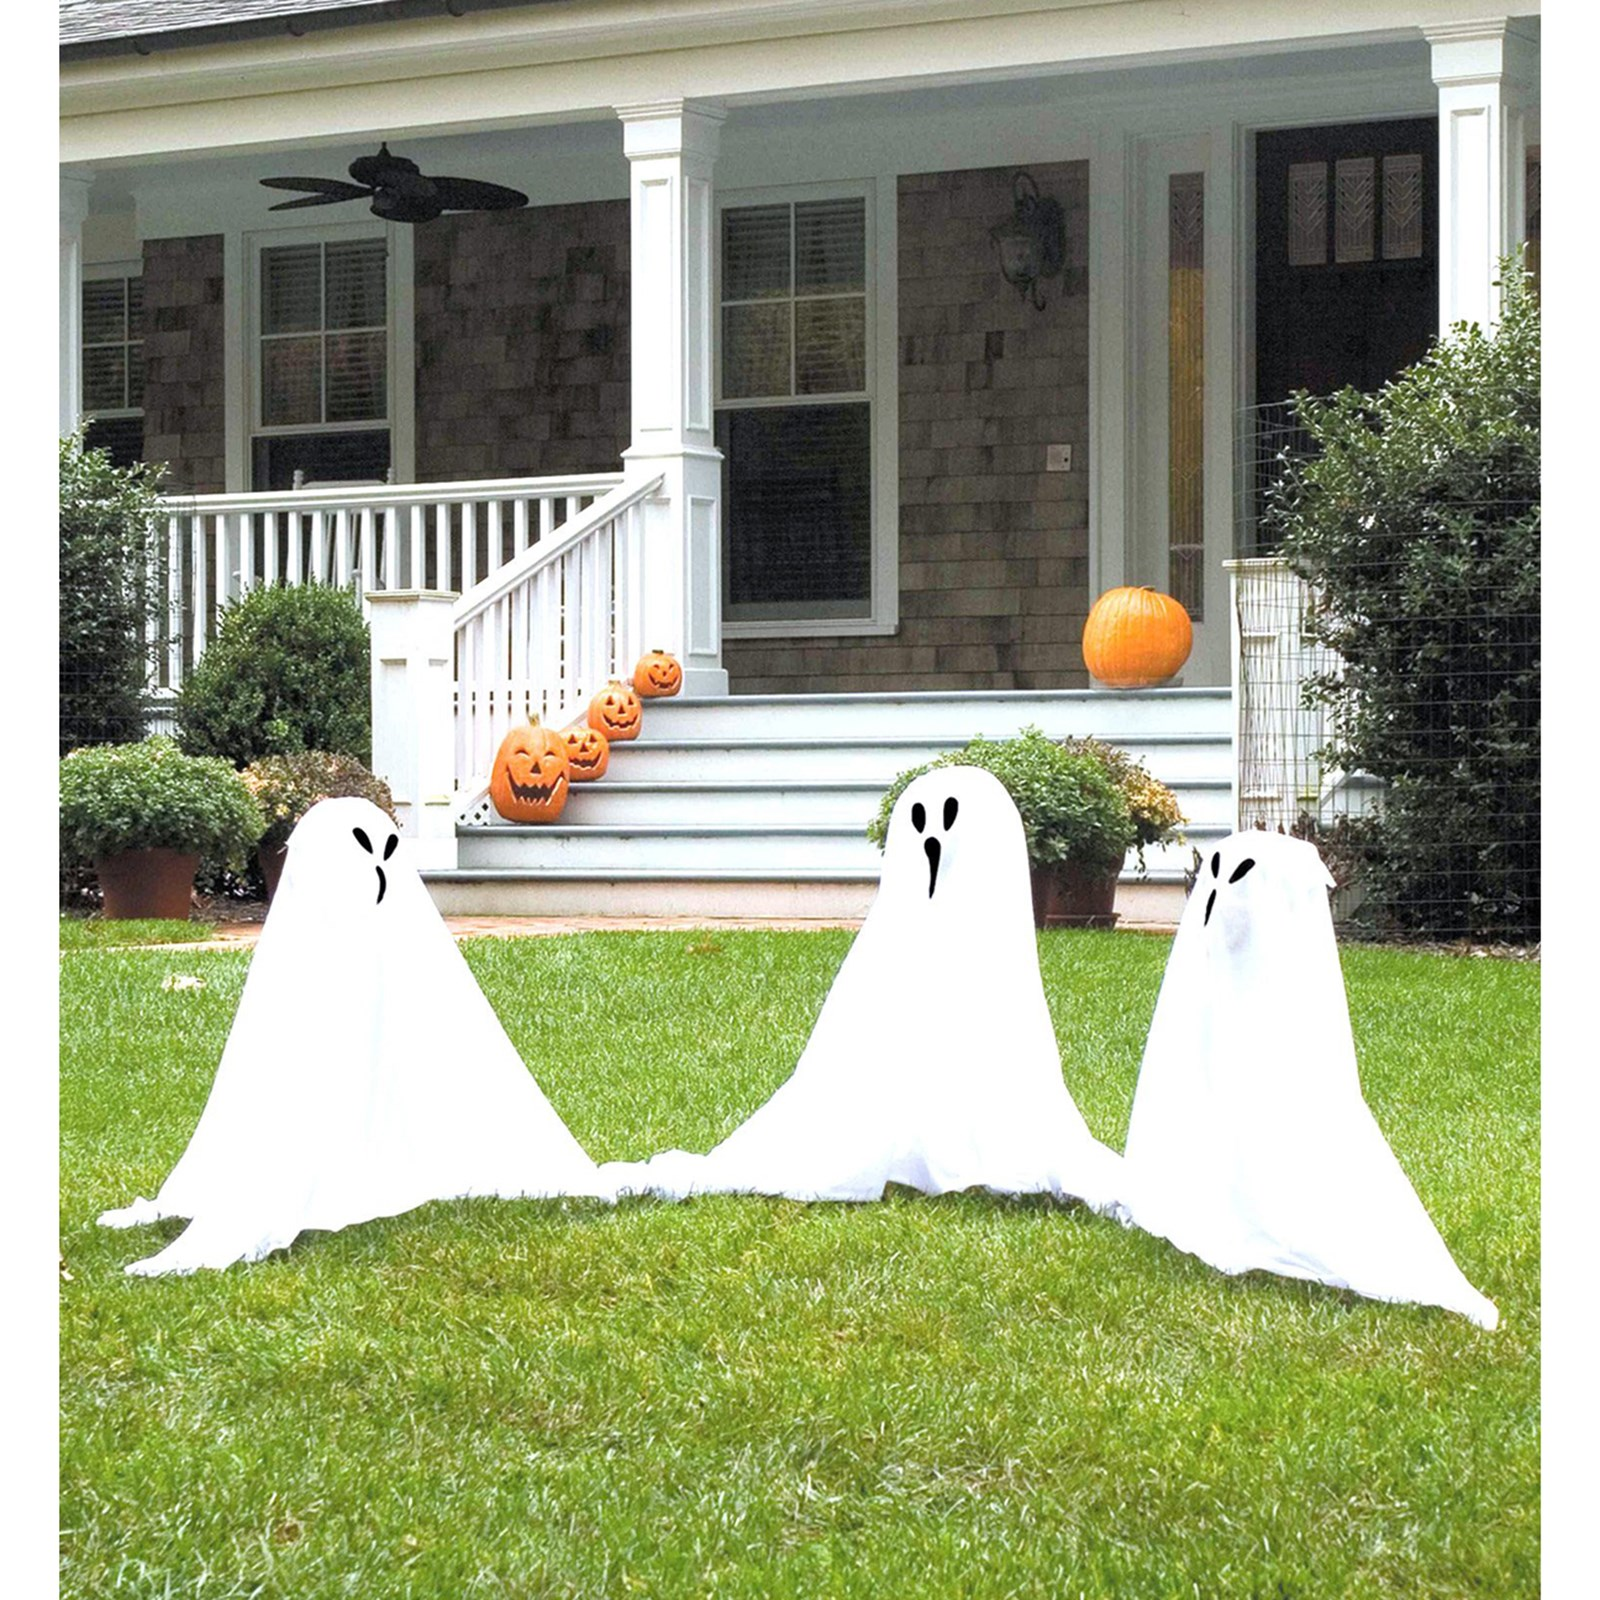 Halloween Ghost Set Light Up 3 Ghosts Prop Outdoor Lawn Yard Lighted Color Decor